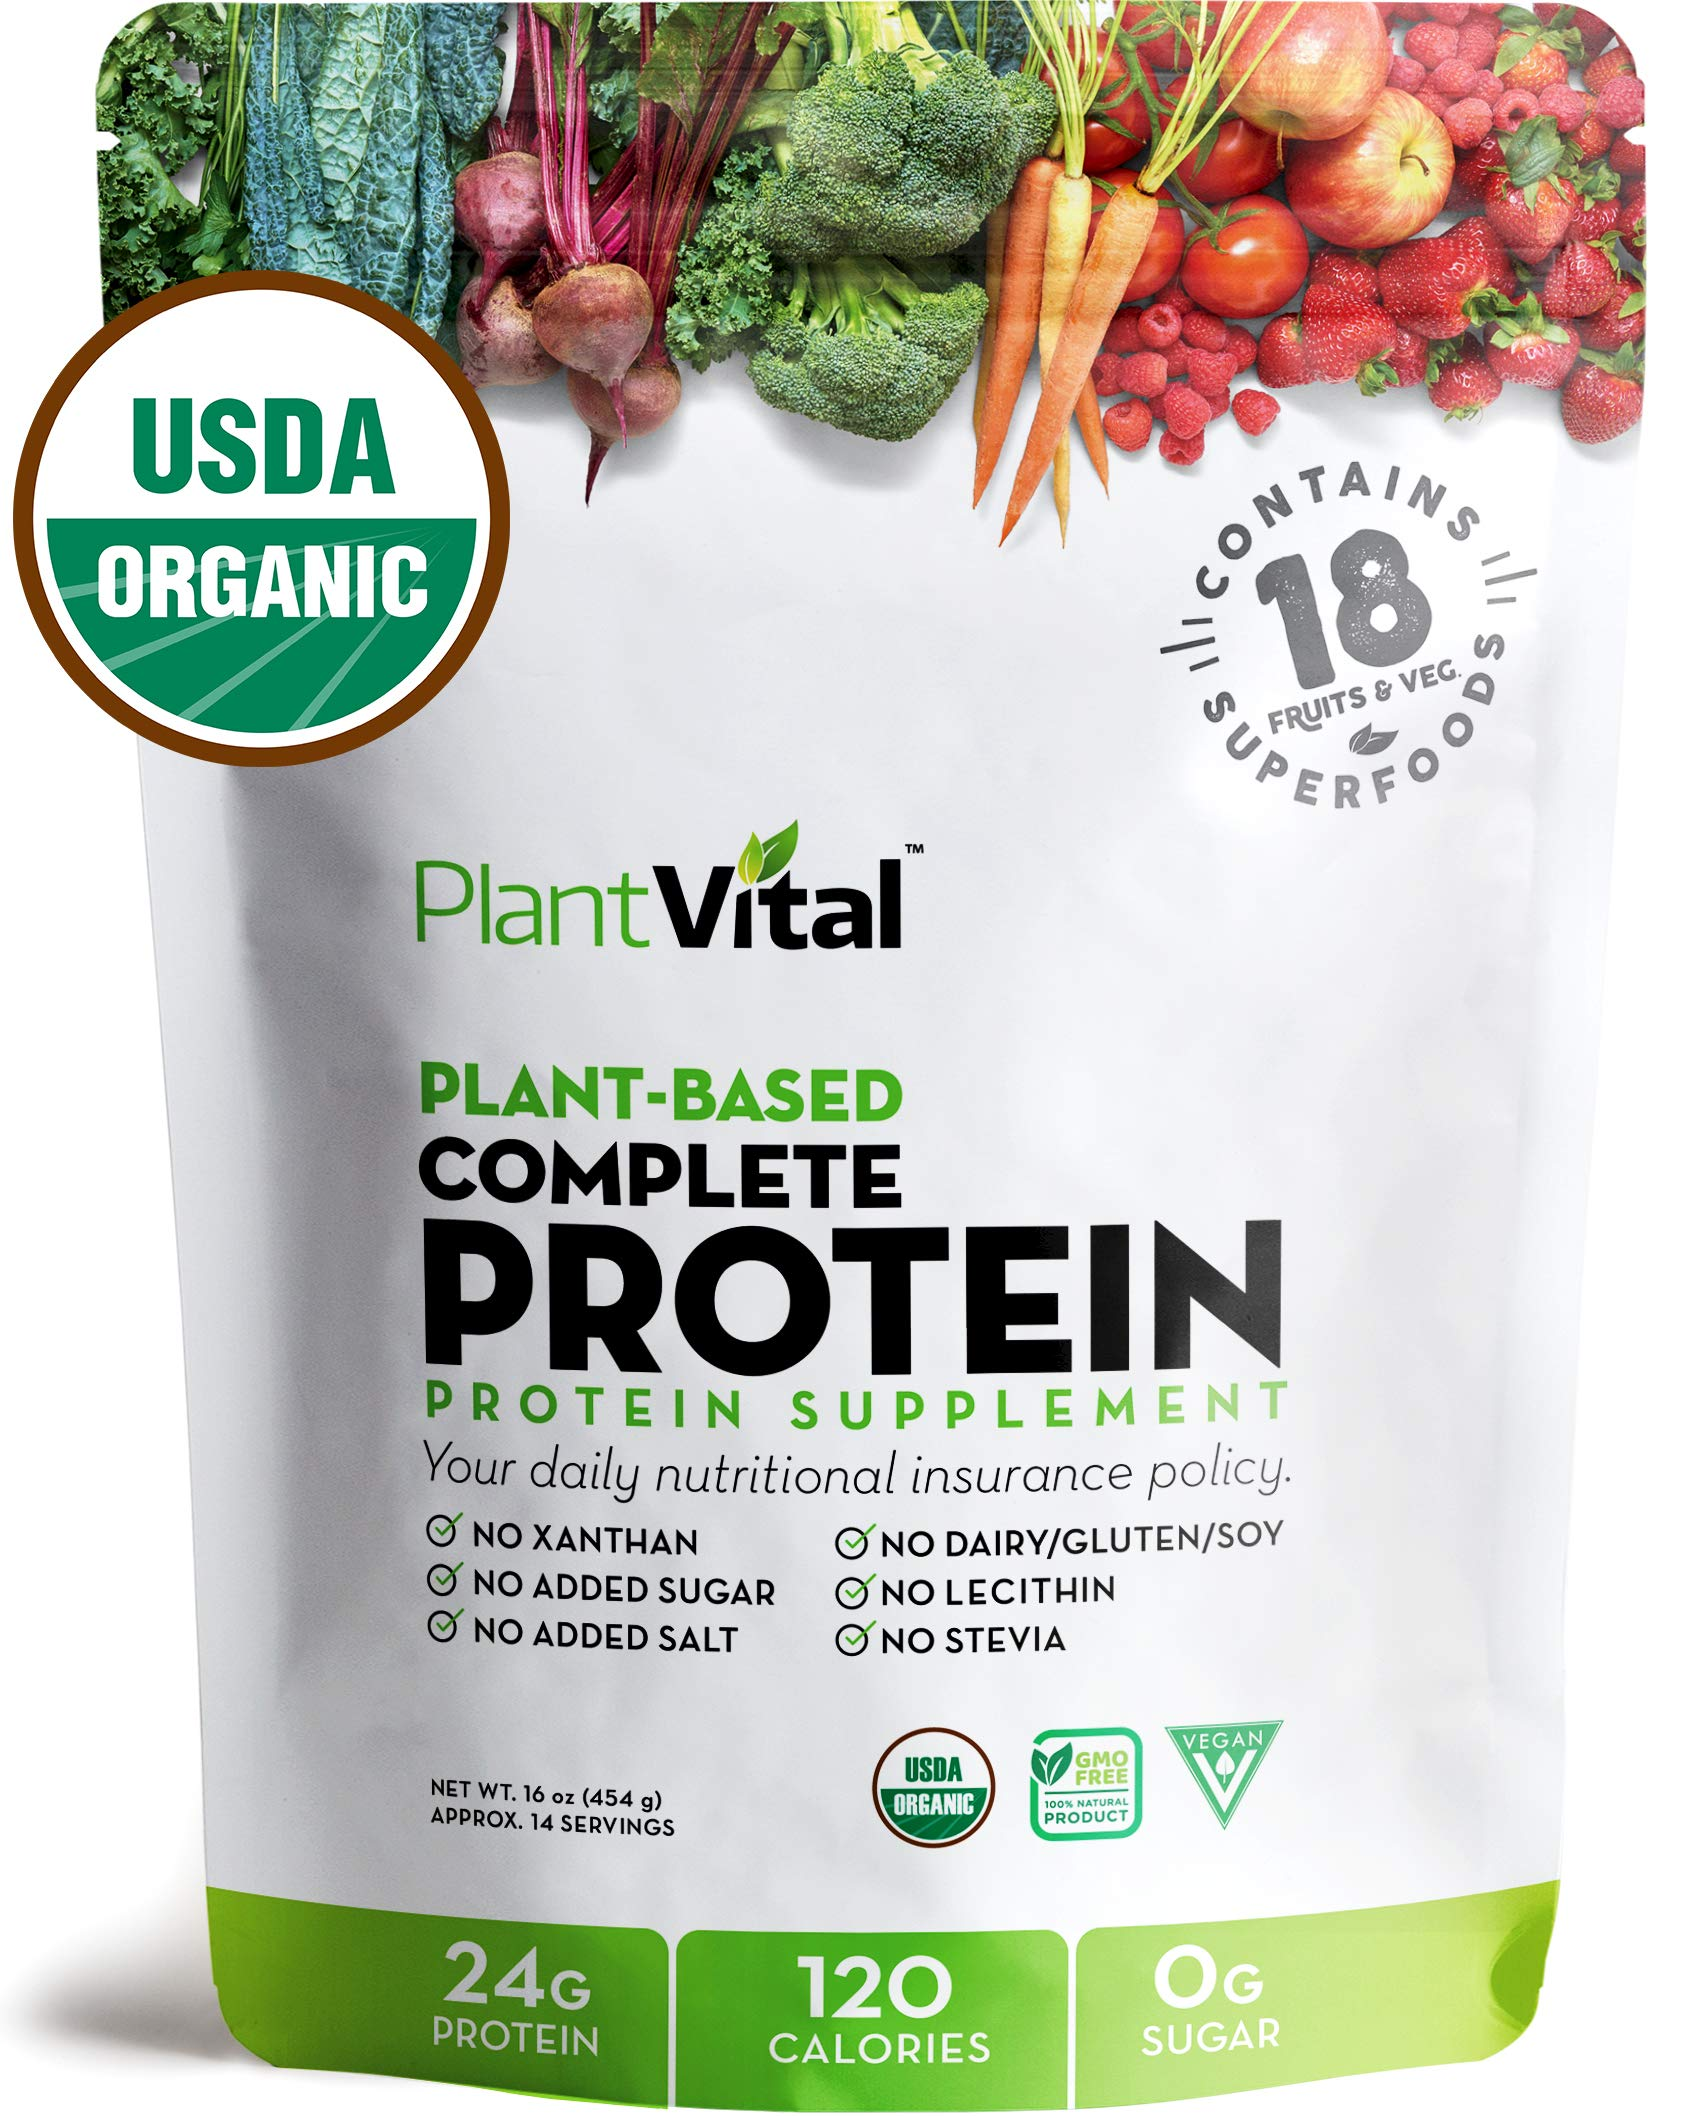 New! Plant Based Protein Powder w 18 SUPERFOODS, Veggies & Probiotics: Kale, Beets, Spirulina & More. Vegan, All BCAA's, Organic, Non-GMO, Gluten Free. 16oz